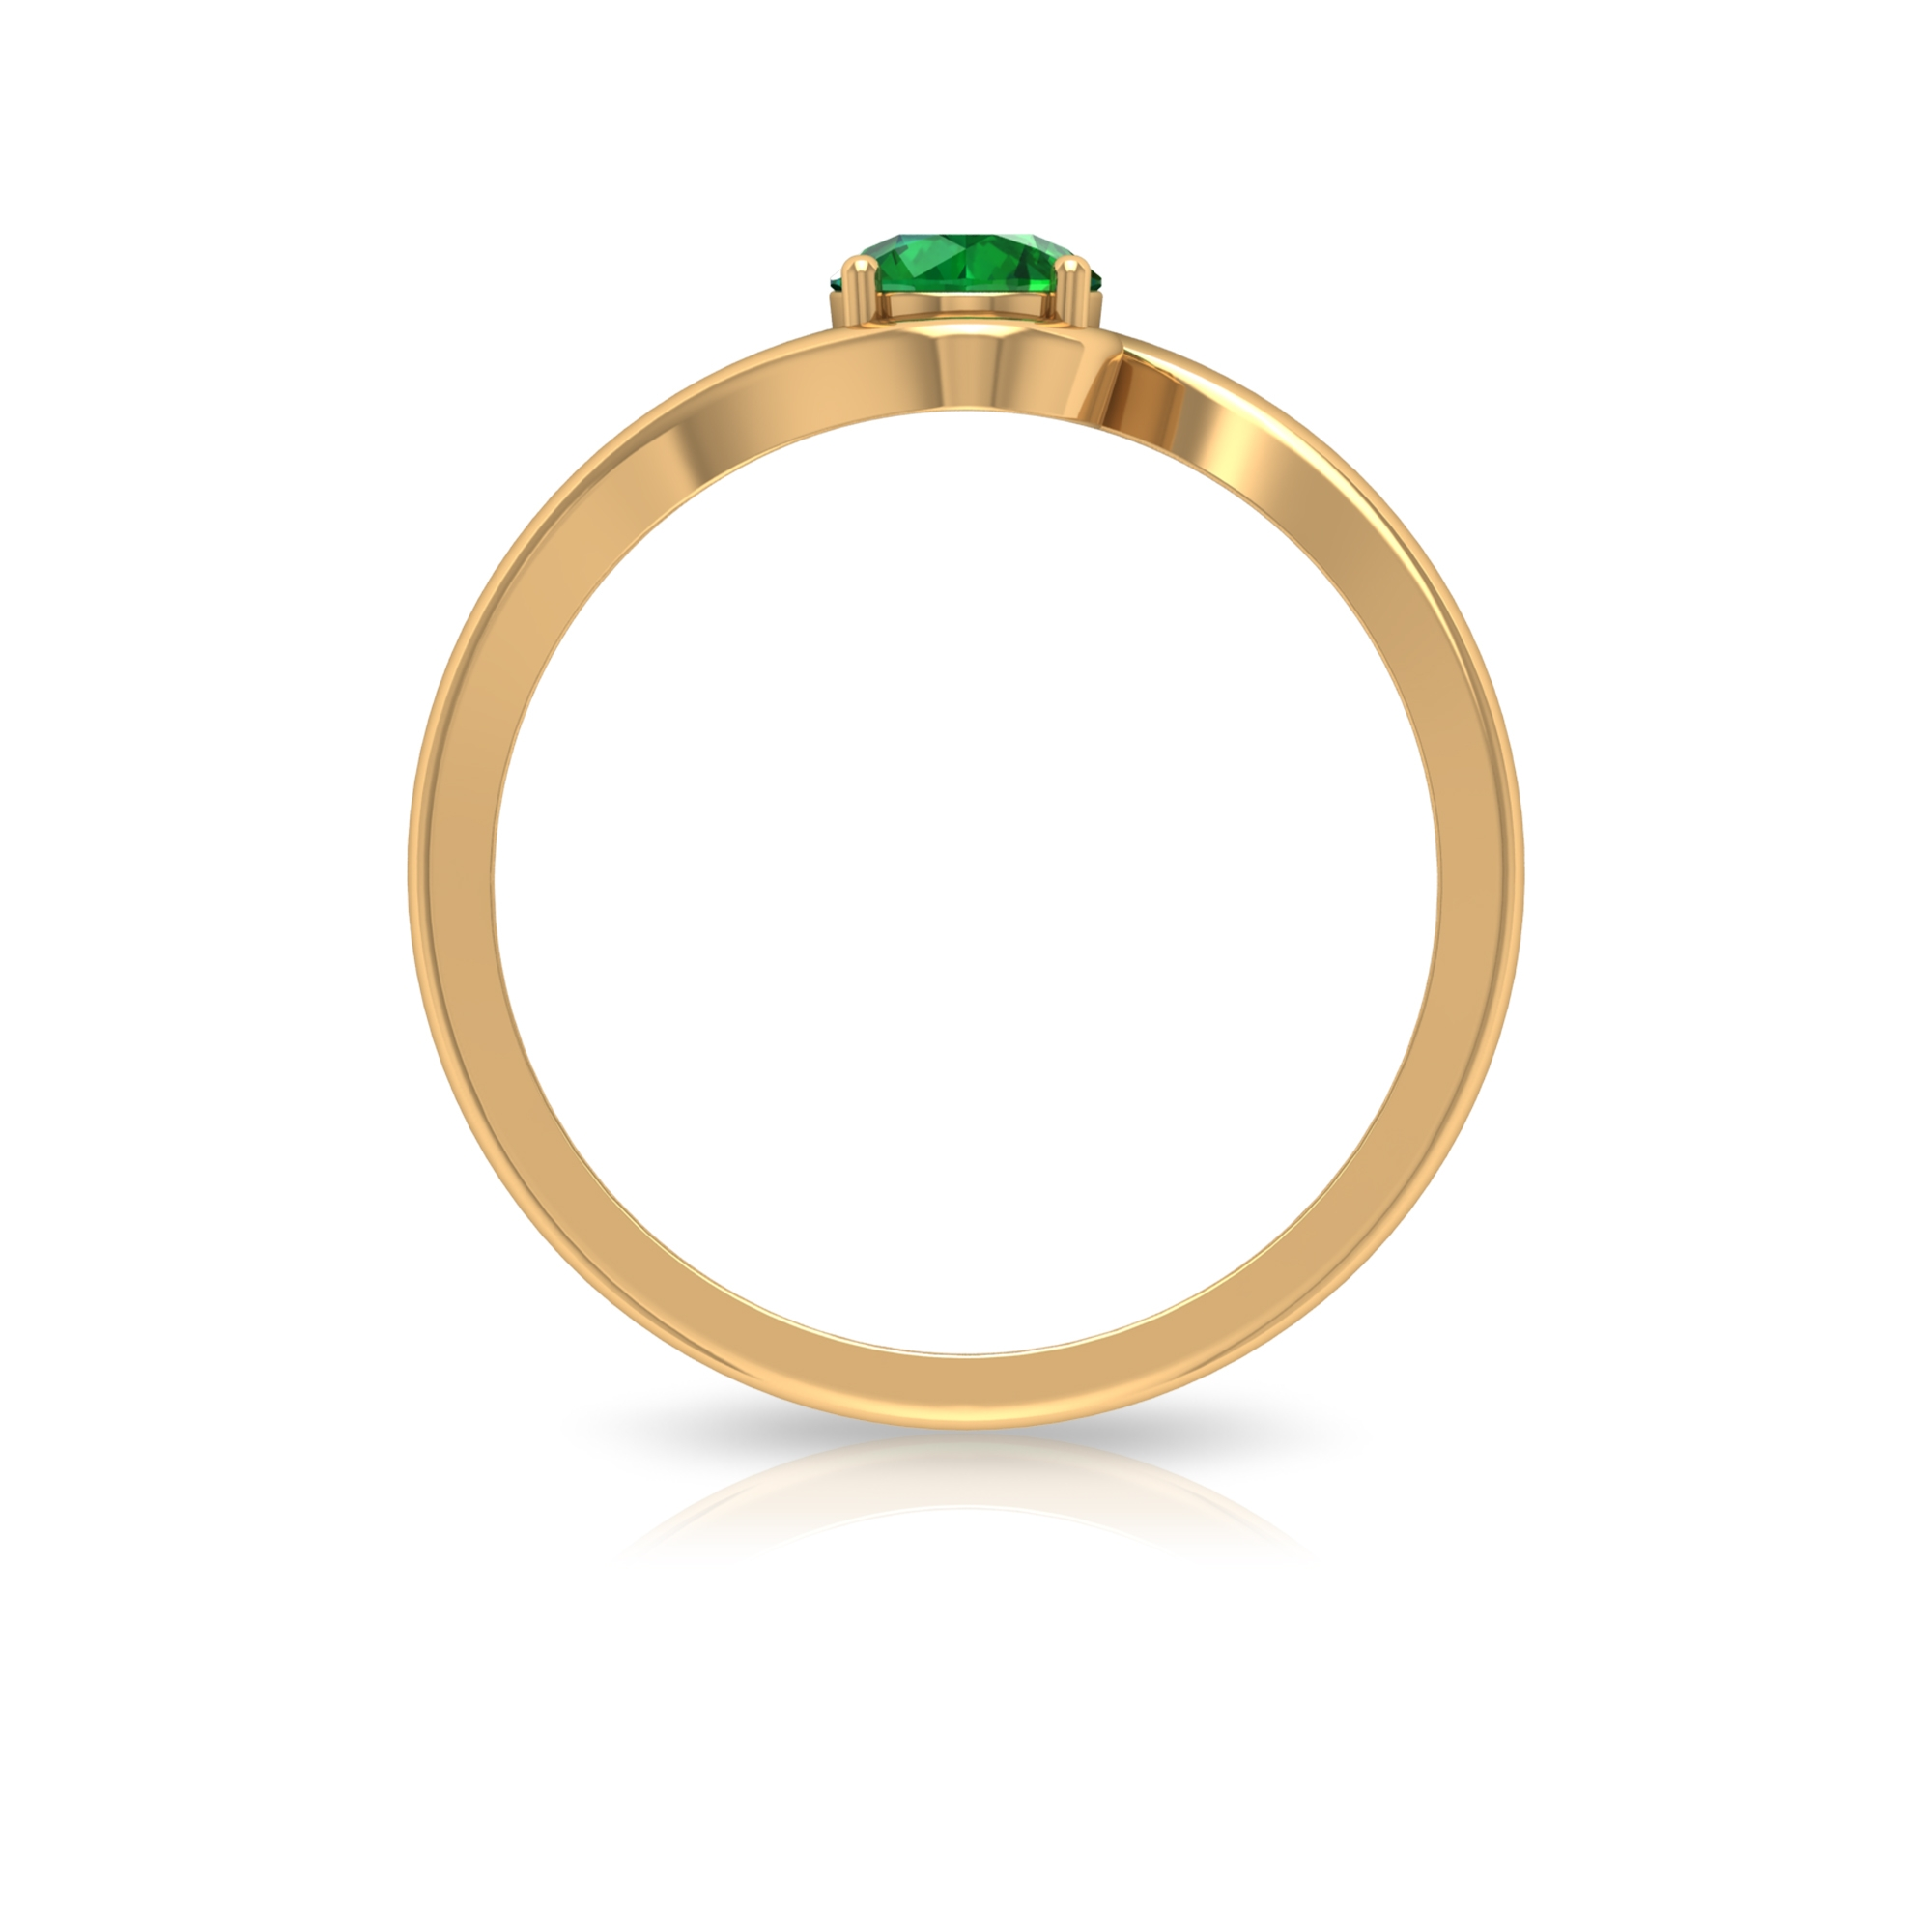 May Birthstone 5 MM Emerald Solitaire Ring in 4 Prong Setting with Bypass Shank